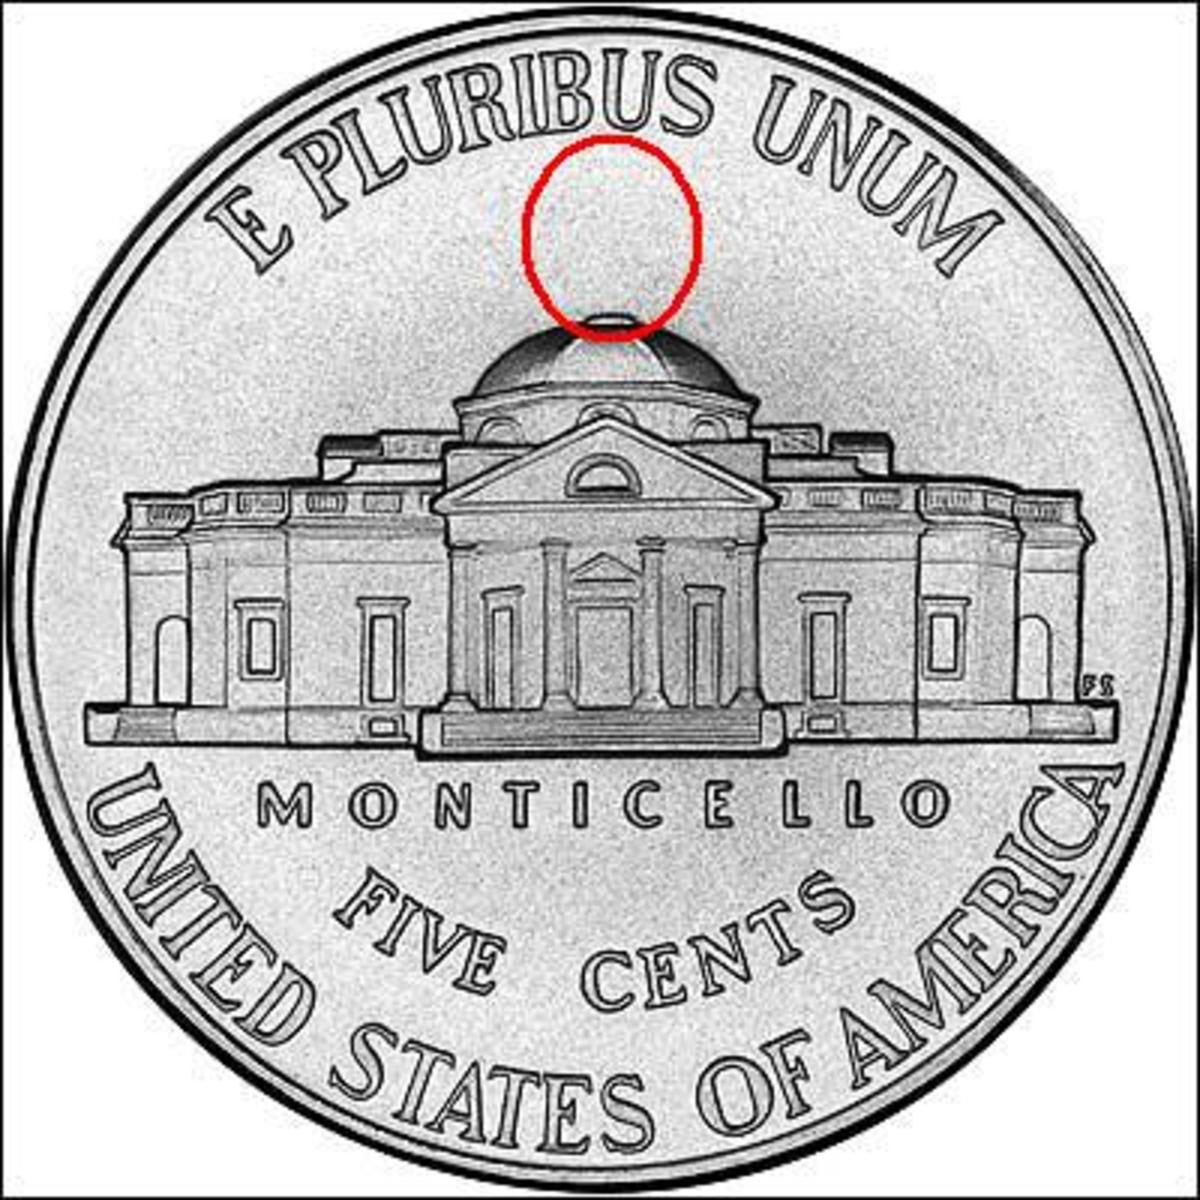 A non-Silver Nickel will lack the mint mark above Monticello.